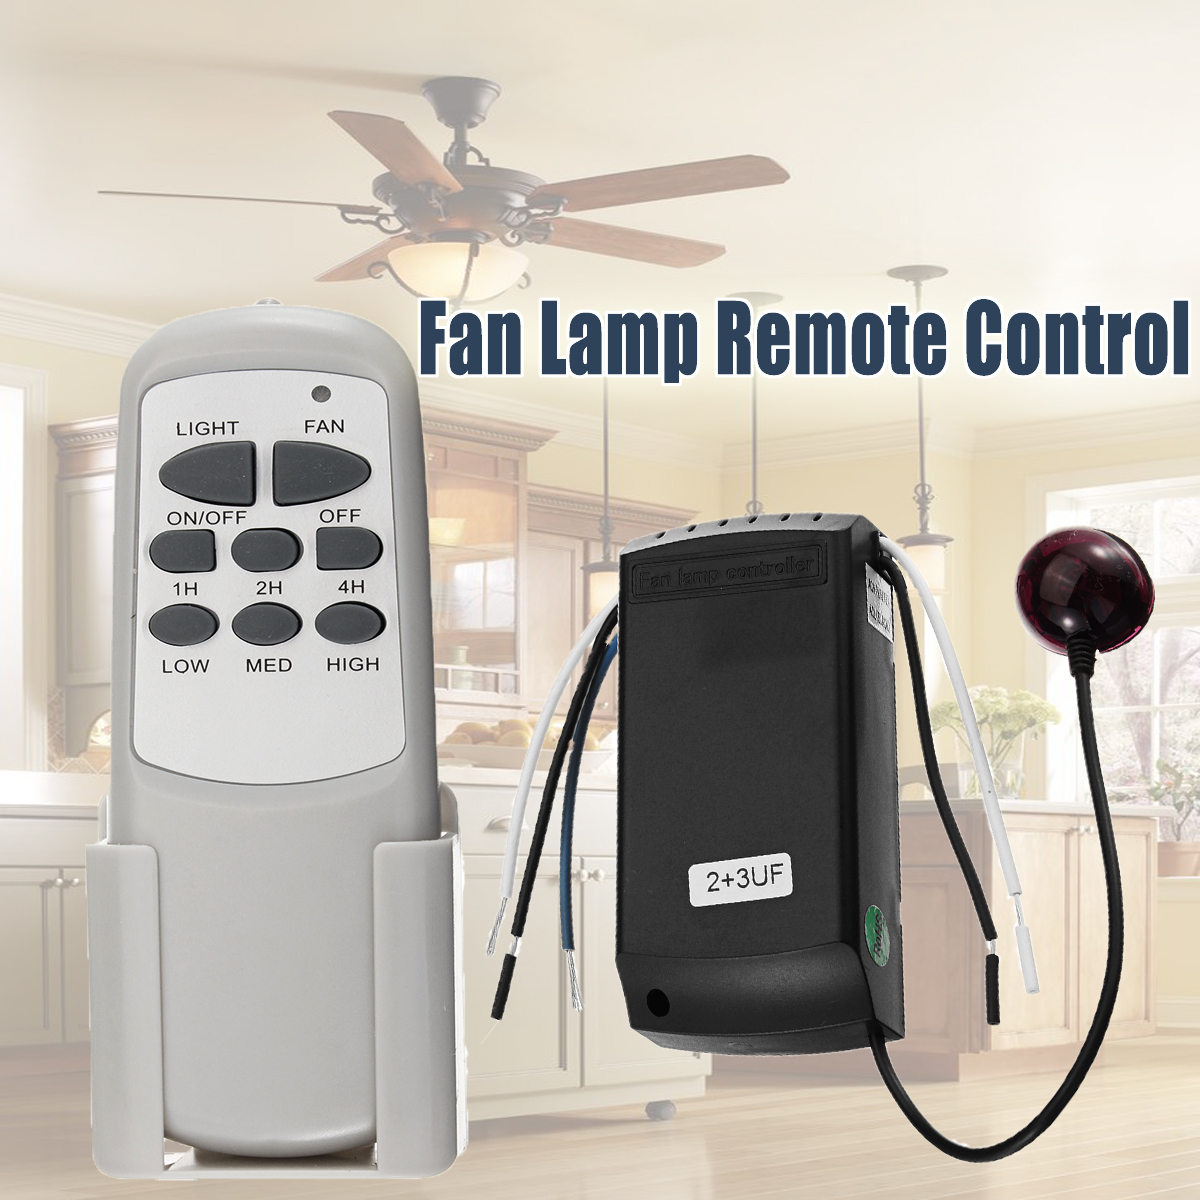 light lamp remote control switch ceiling fan light lamp remote controller control kit. Black Bedroom Furniture Sets. Home Design Ideas